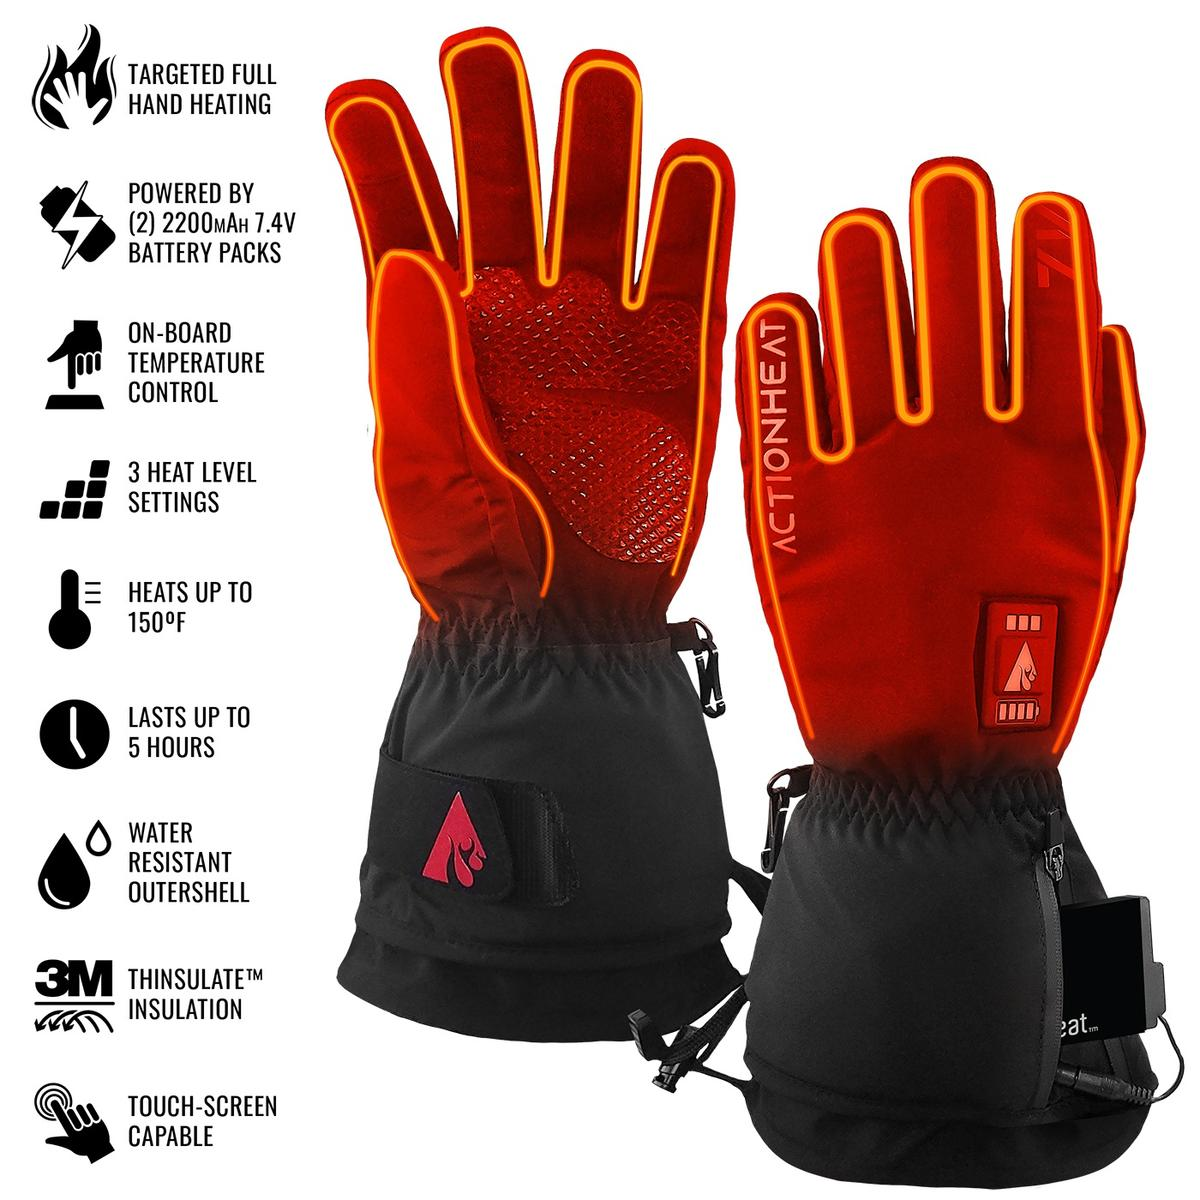 ActionHeat 7V Men's Everyday Heated Gloves - Back